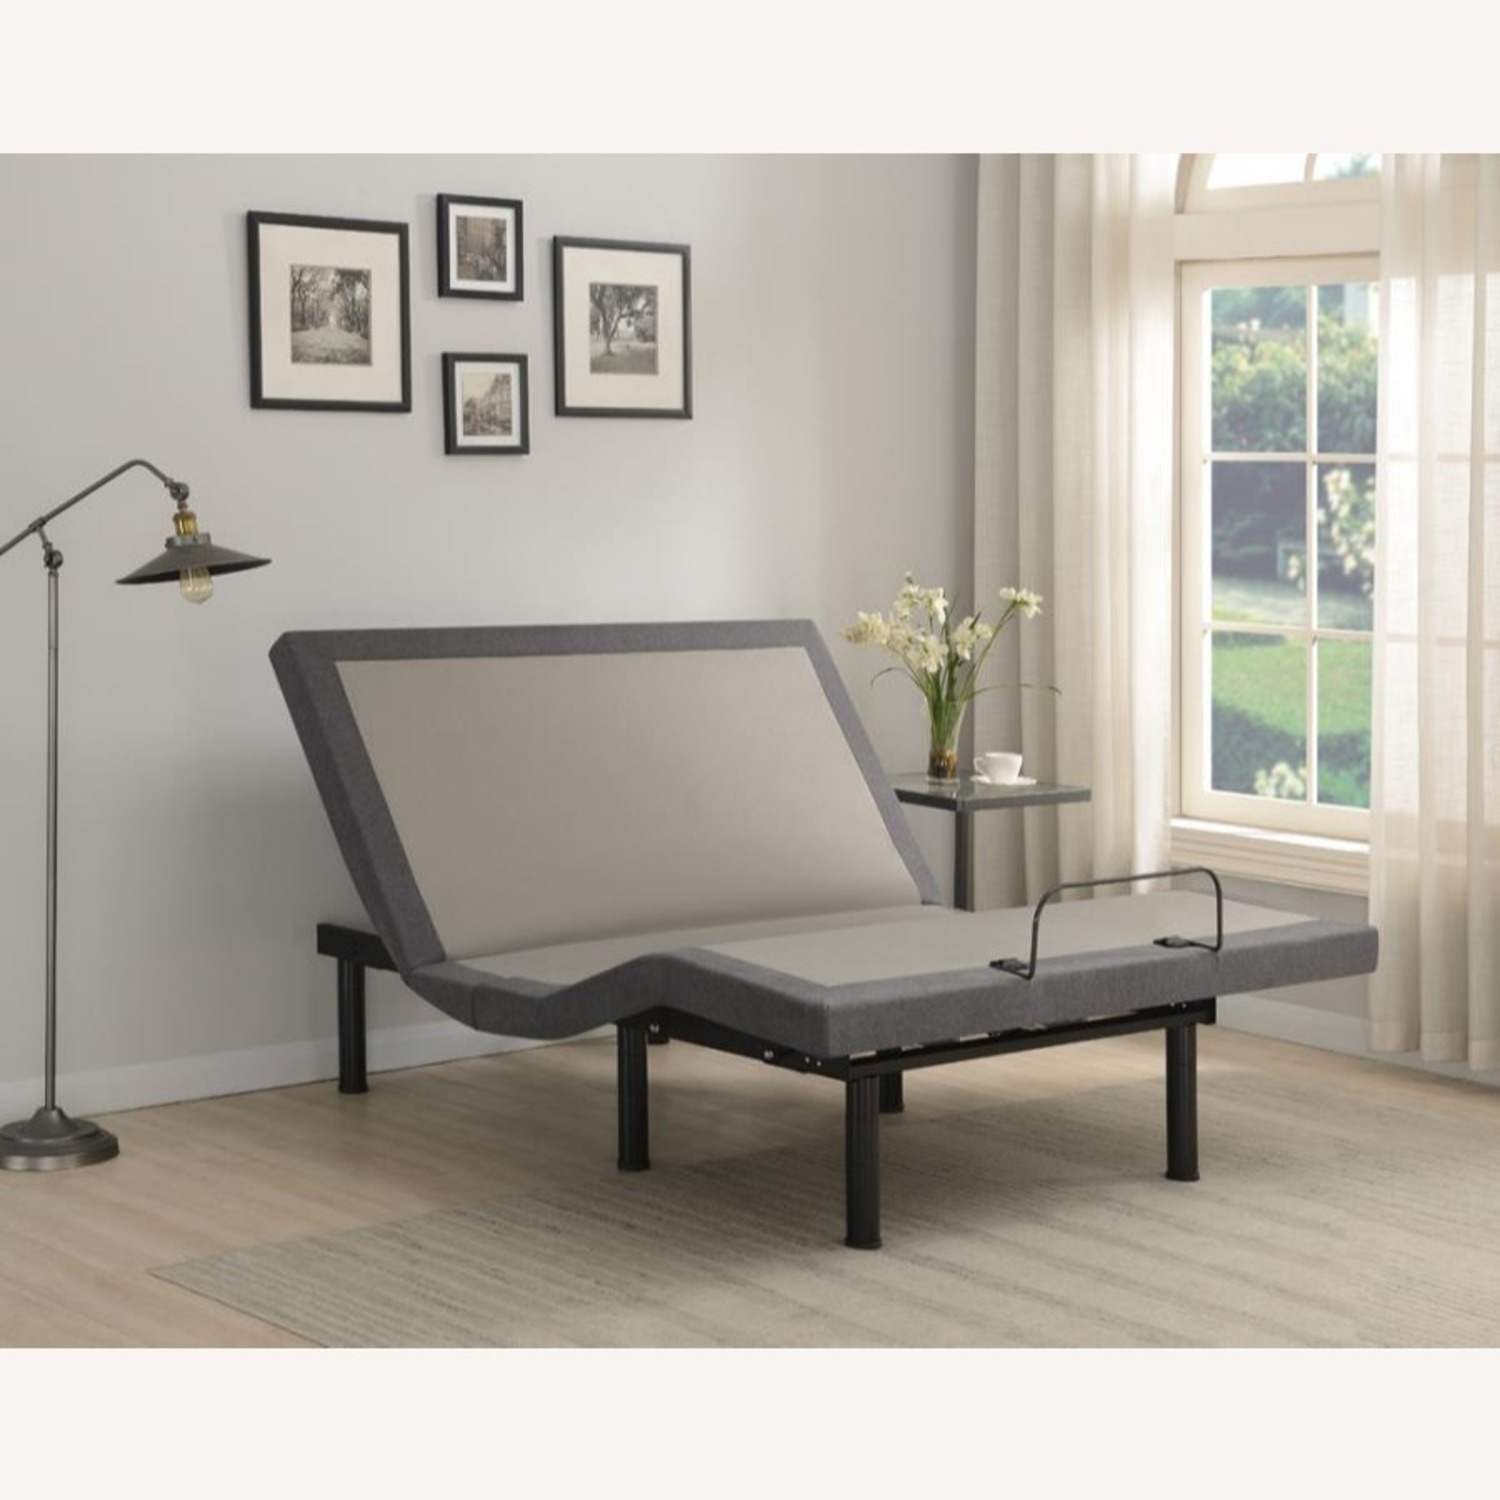 Adjustable Queen Bed Base In Grey Fabric - image-8